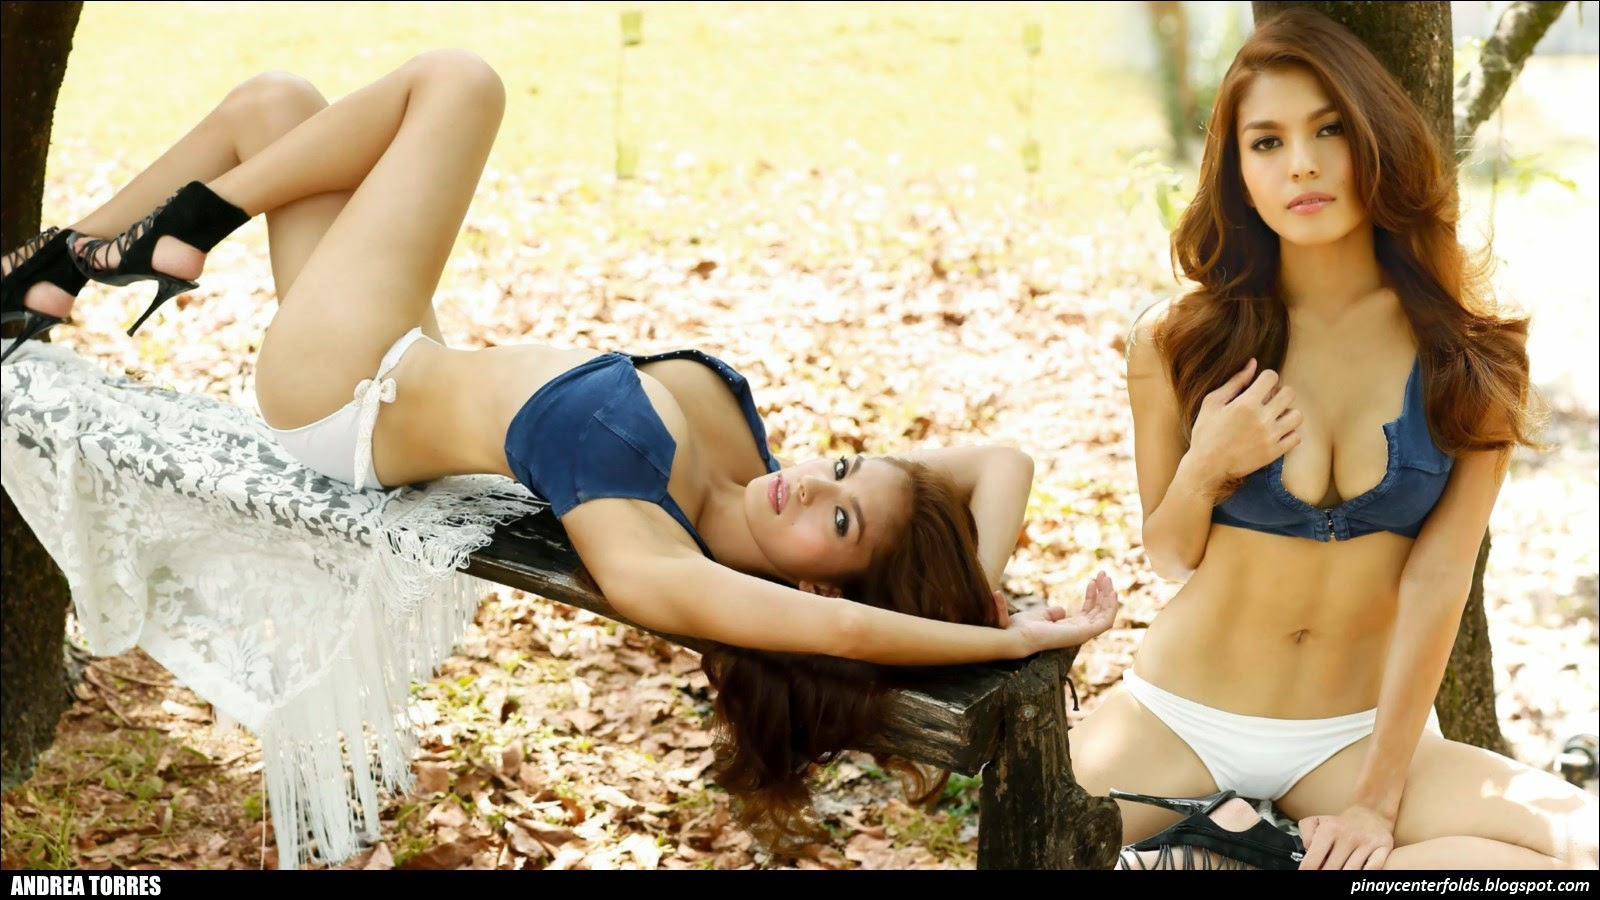 Andrea Torres In FHM 2